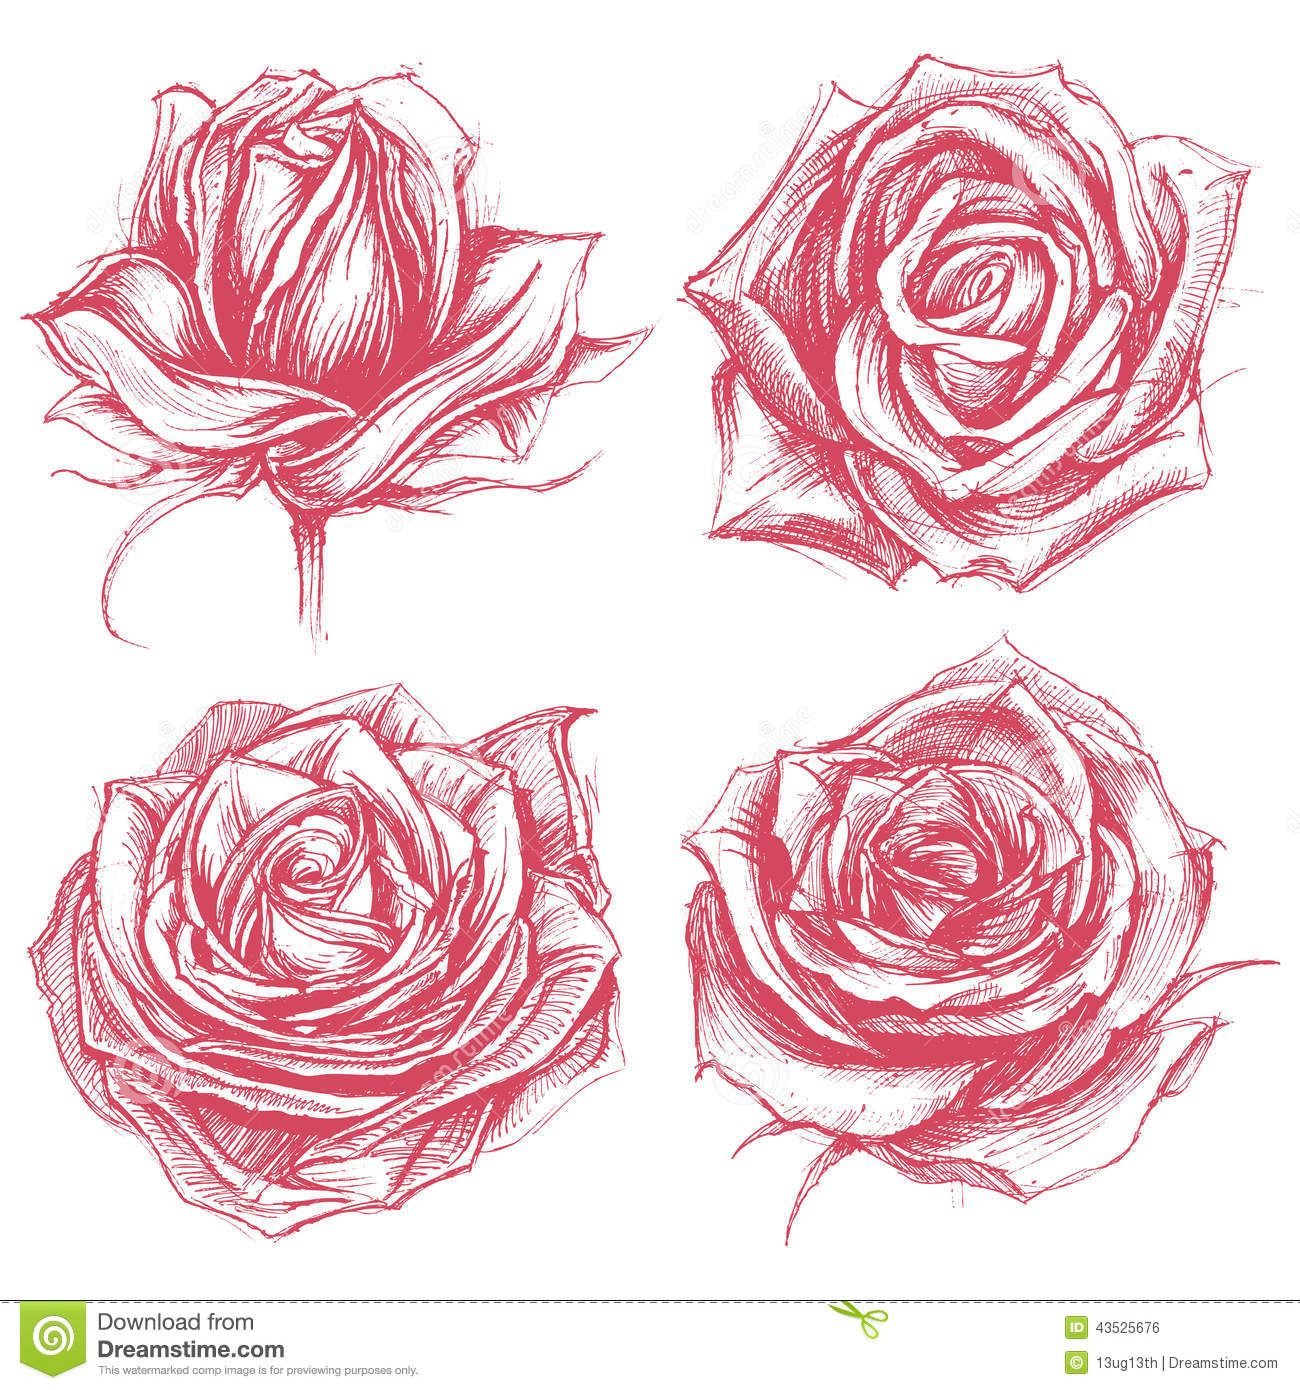 Drawing Lines Using Svg : Roses drawing set stock vector illustration of curve